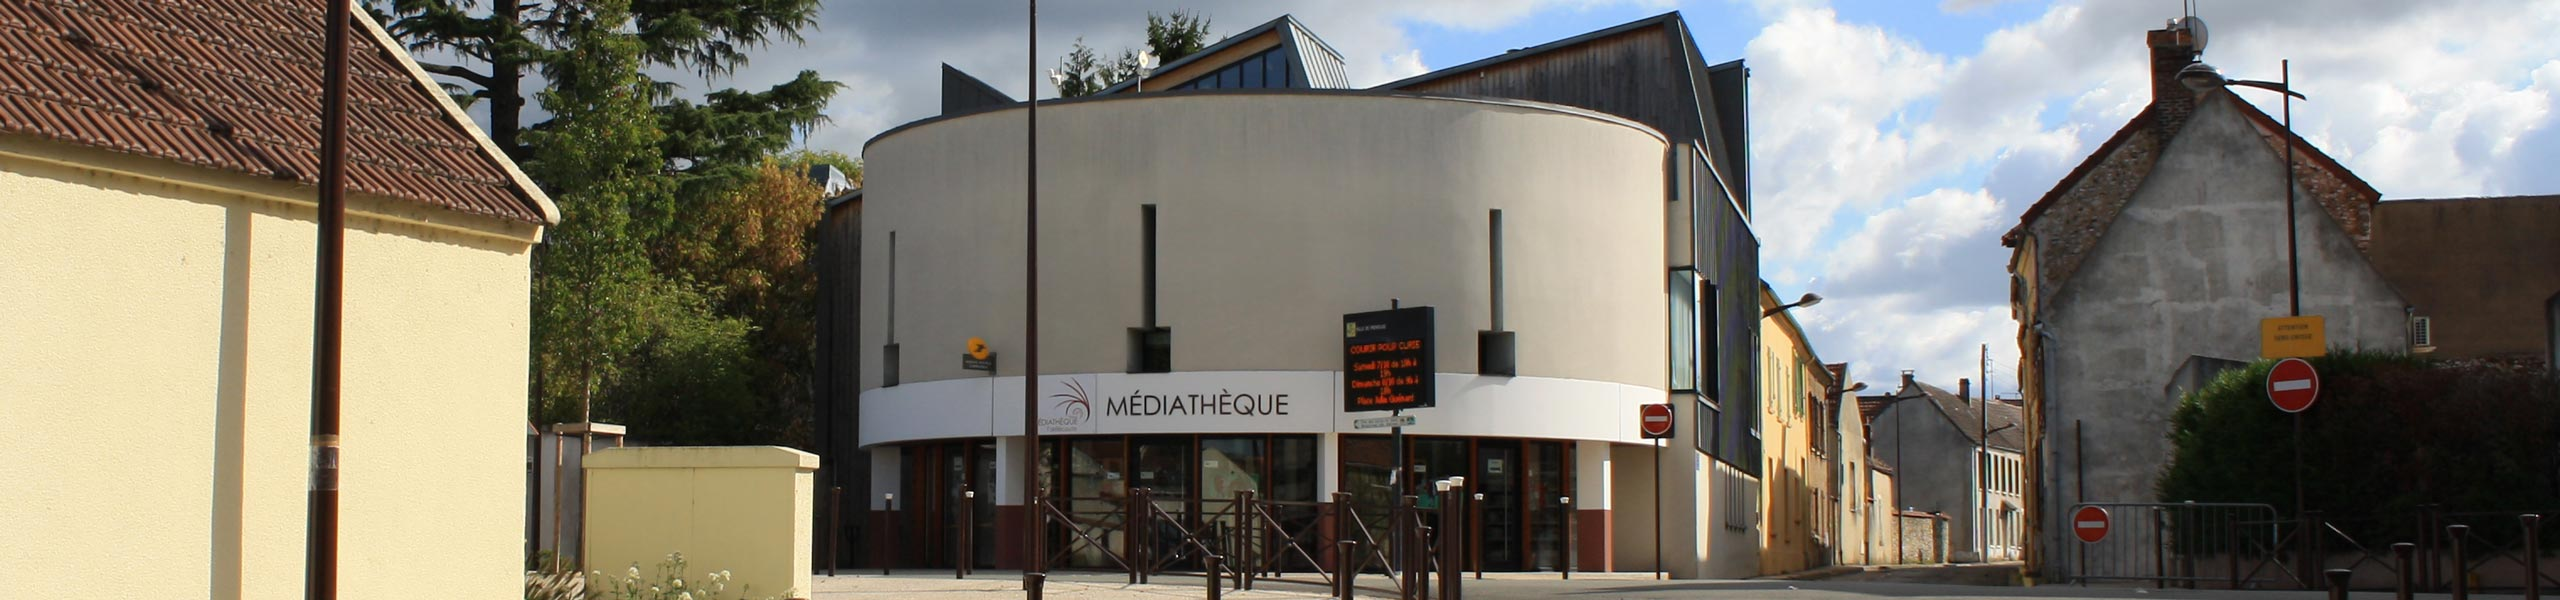 mediatheque-panorama